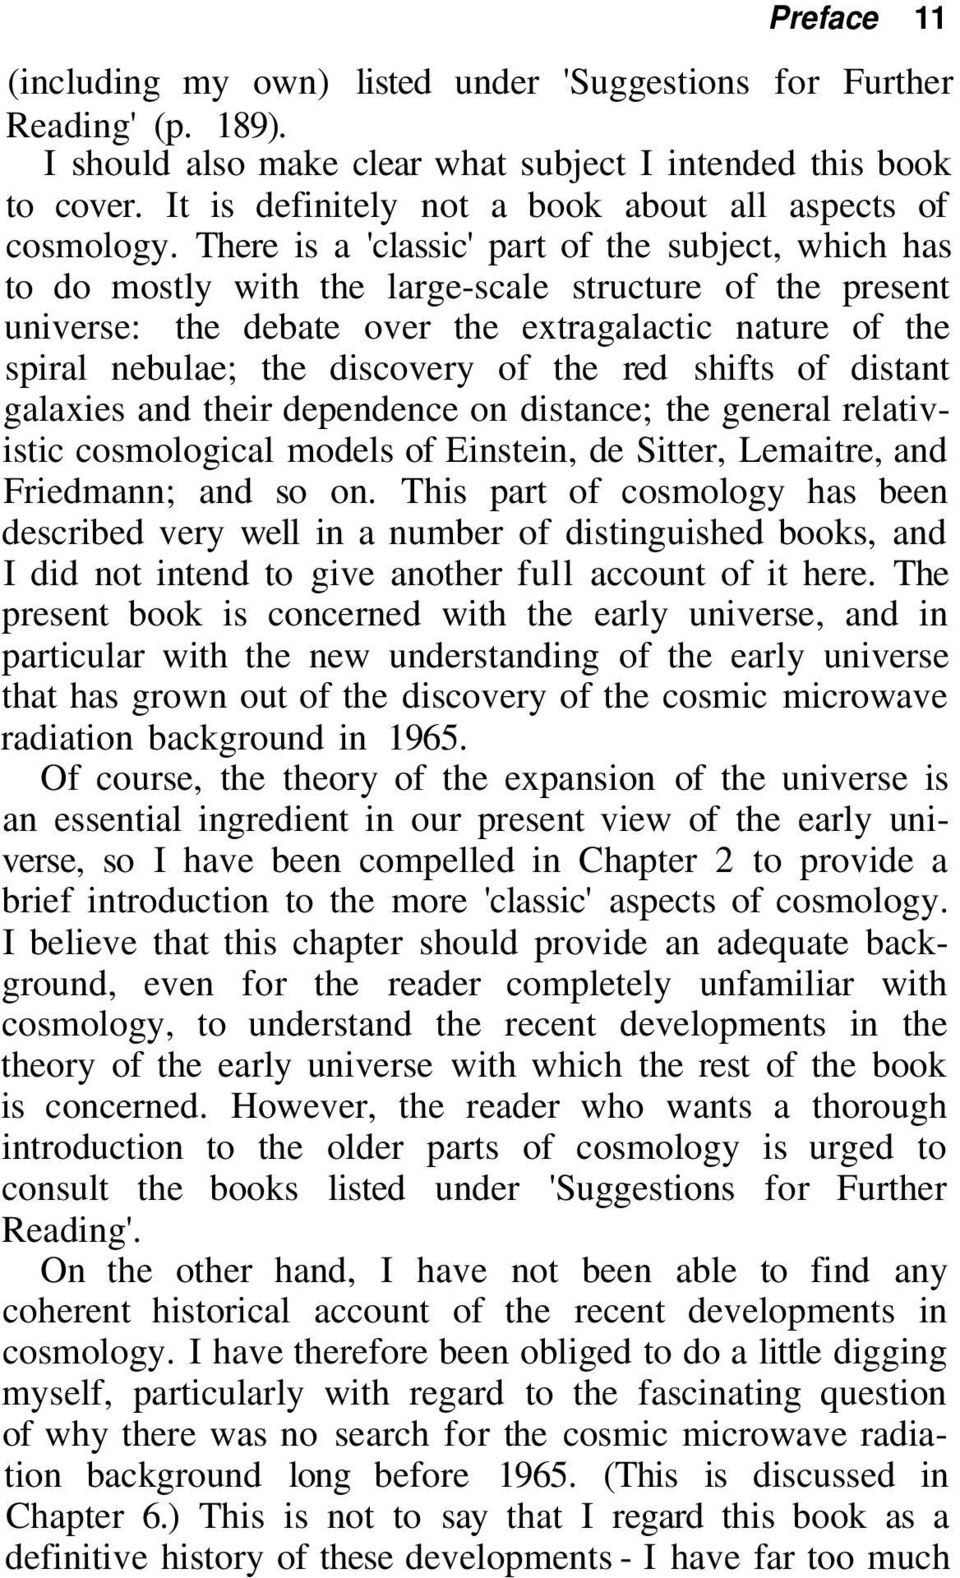 There is a 'classic' part of the subject, which has to do mostly with the large-scale structure of the present universe: the debate over the extragalactic nature of the spiral nebulae; the discovery